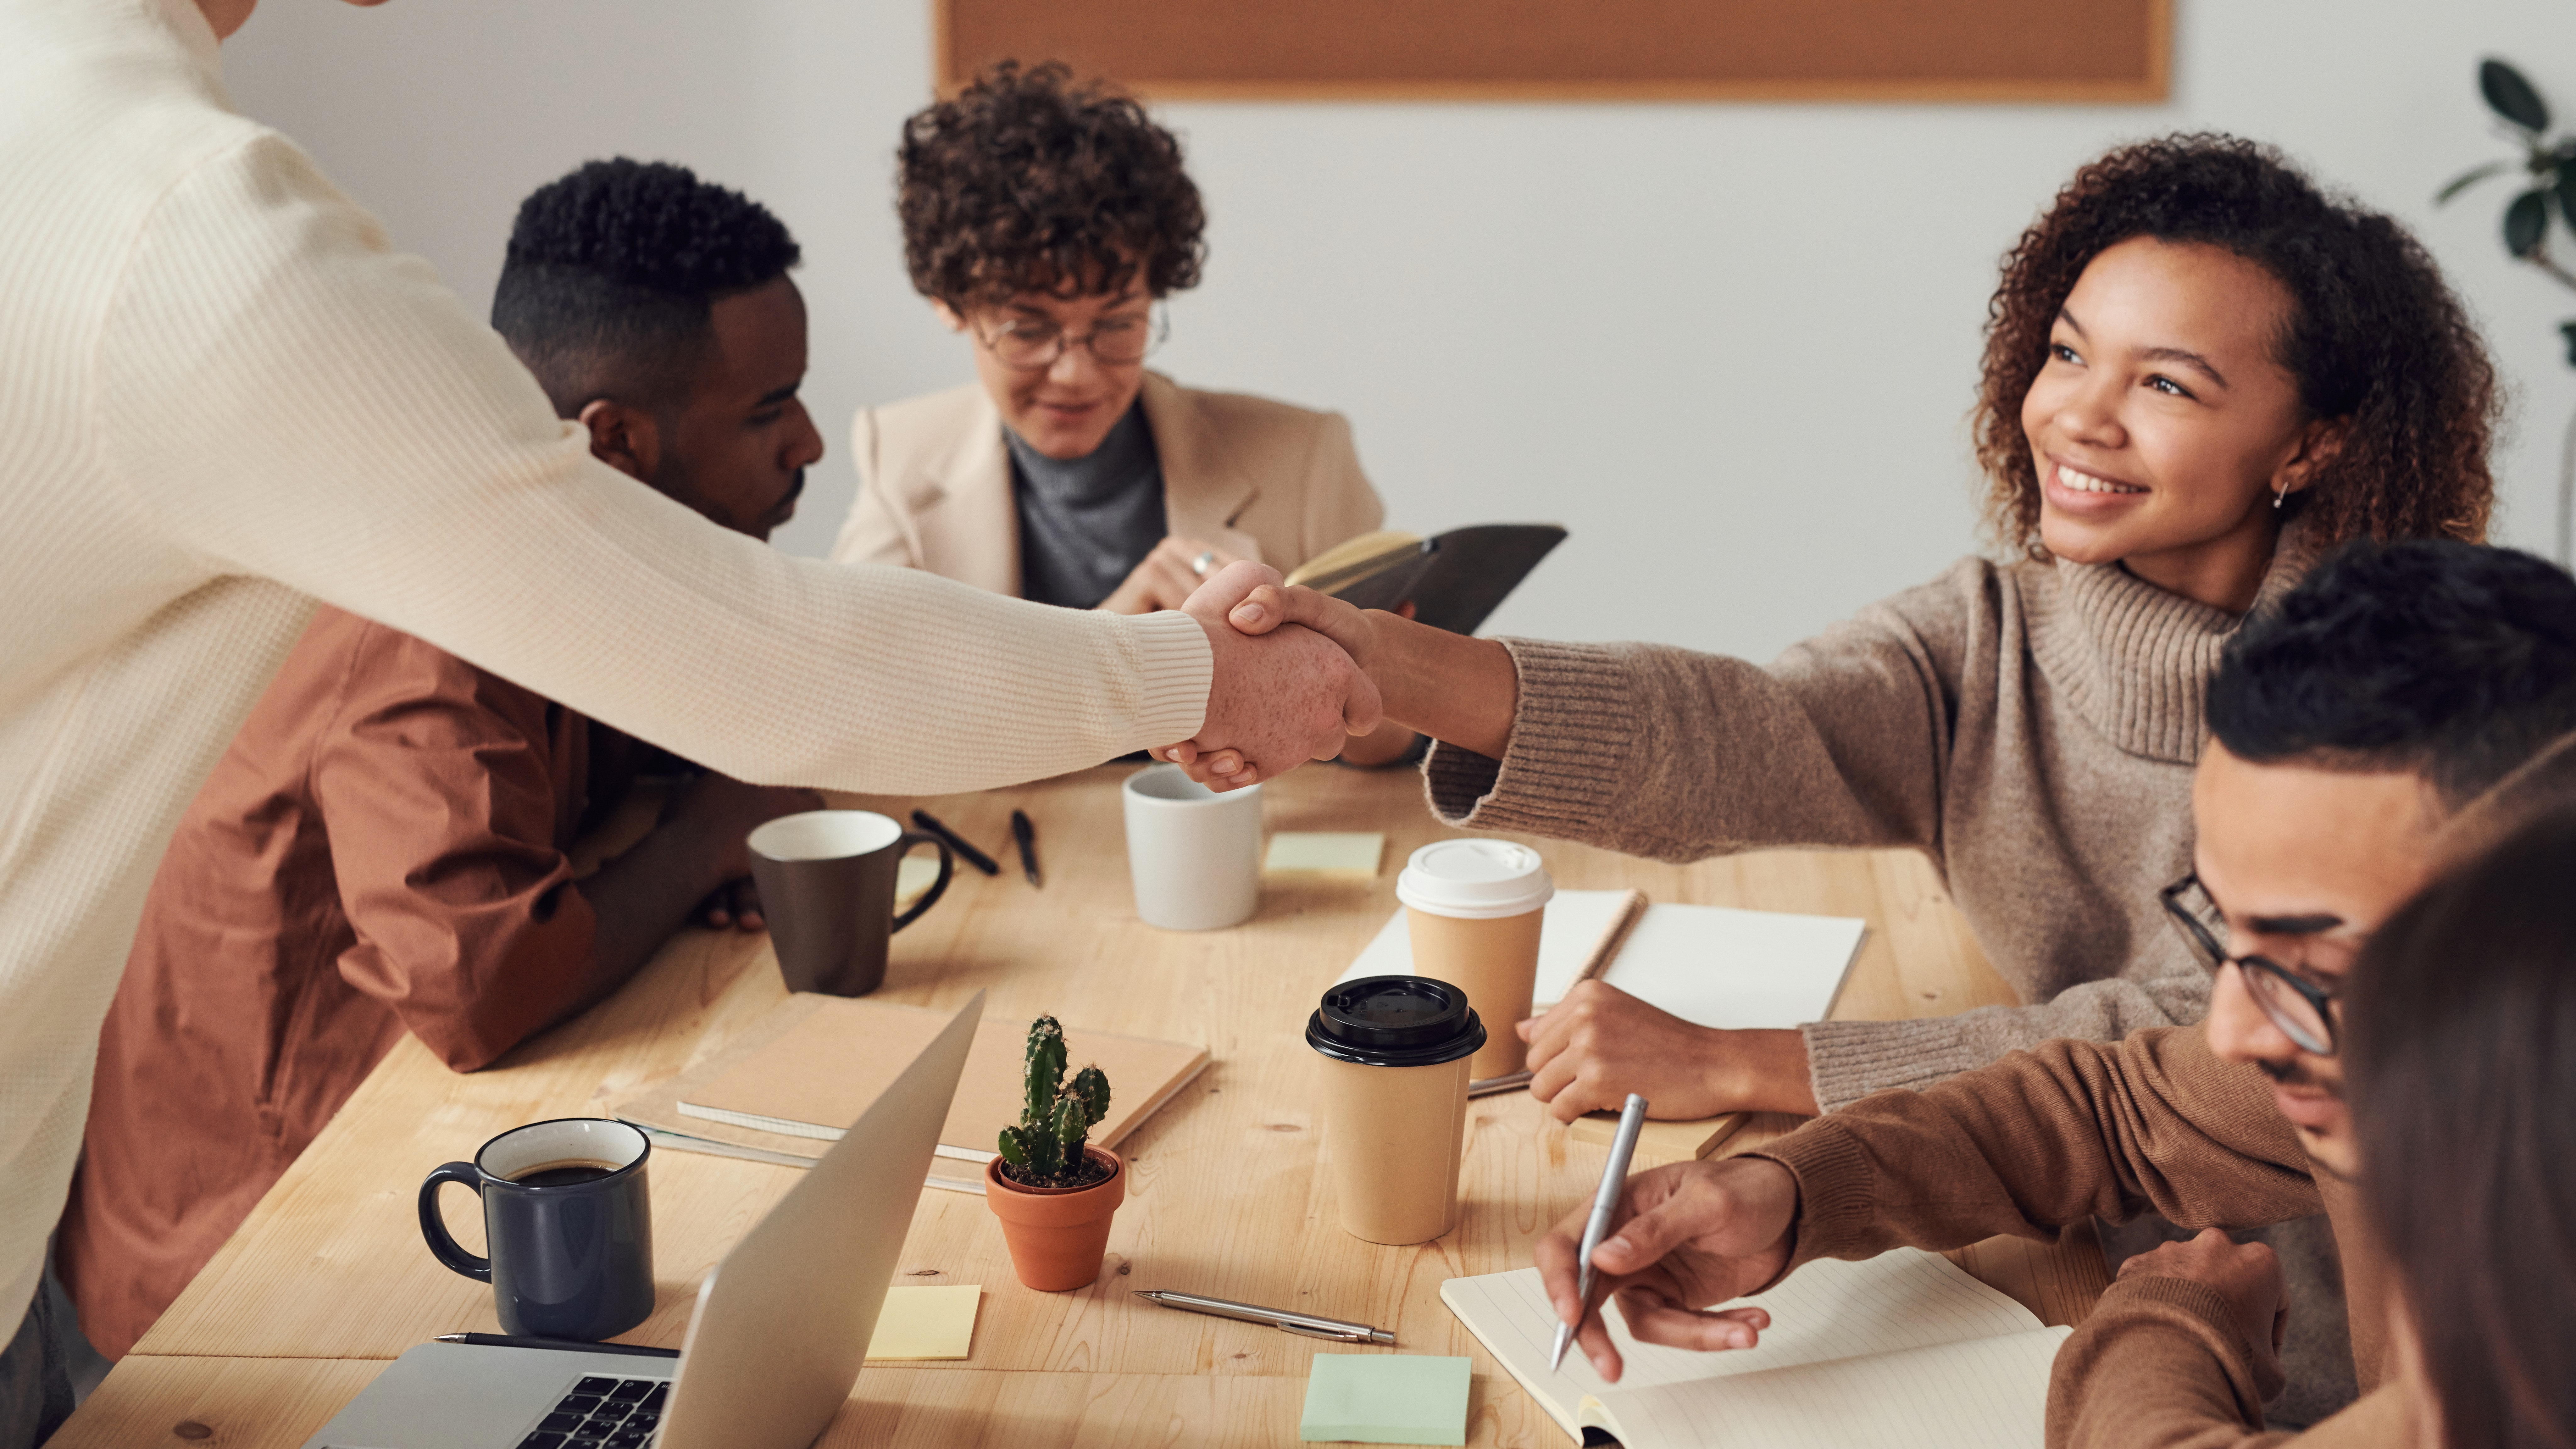 Reducing Bias in the Workplace